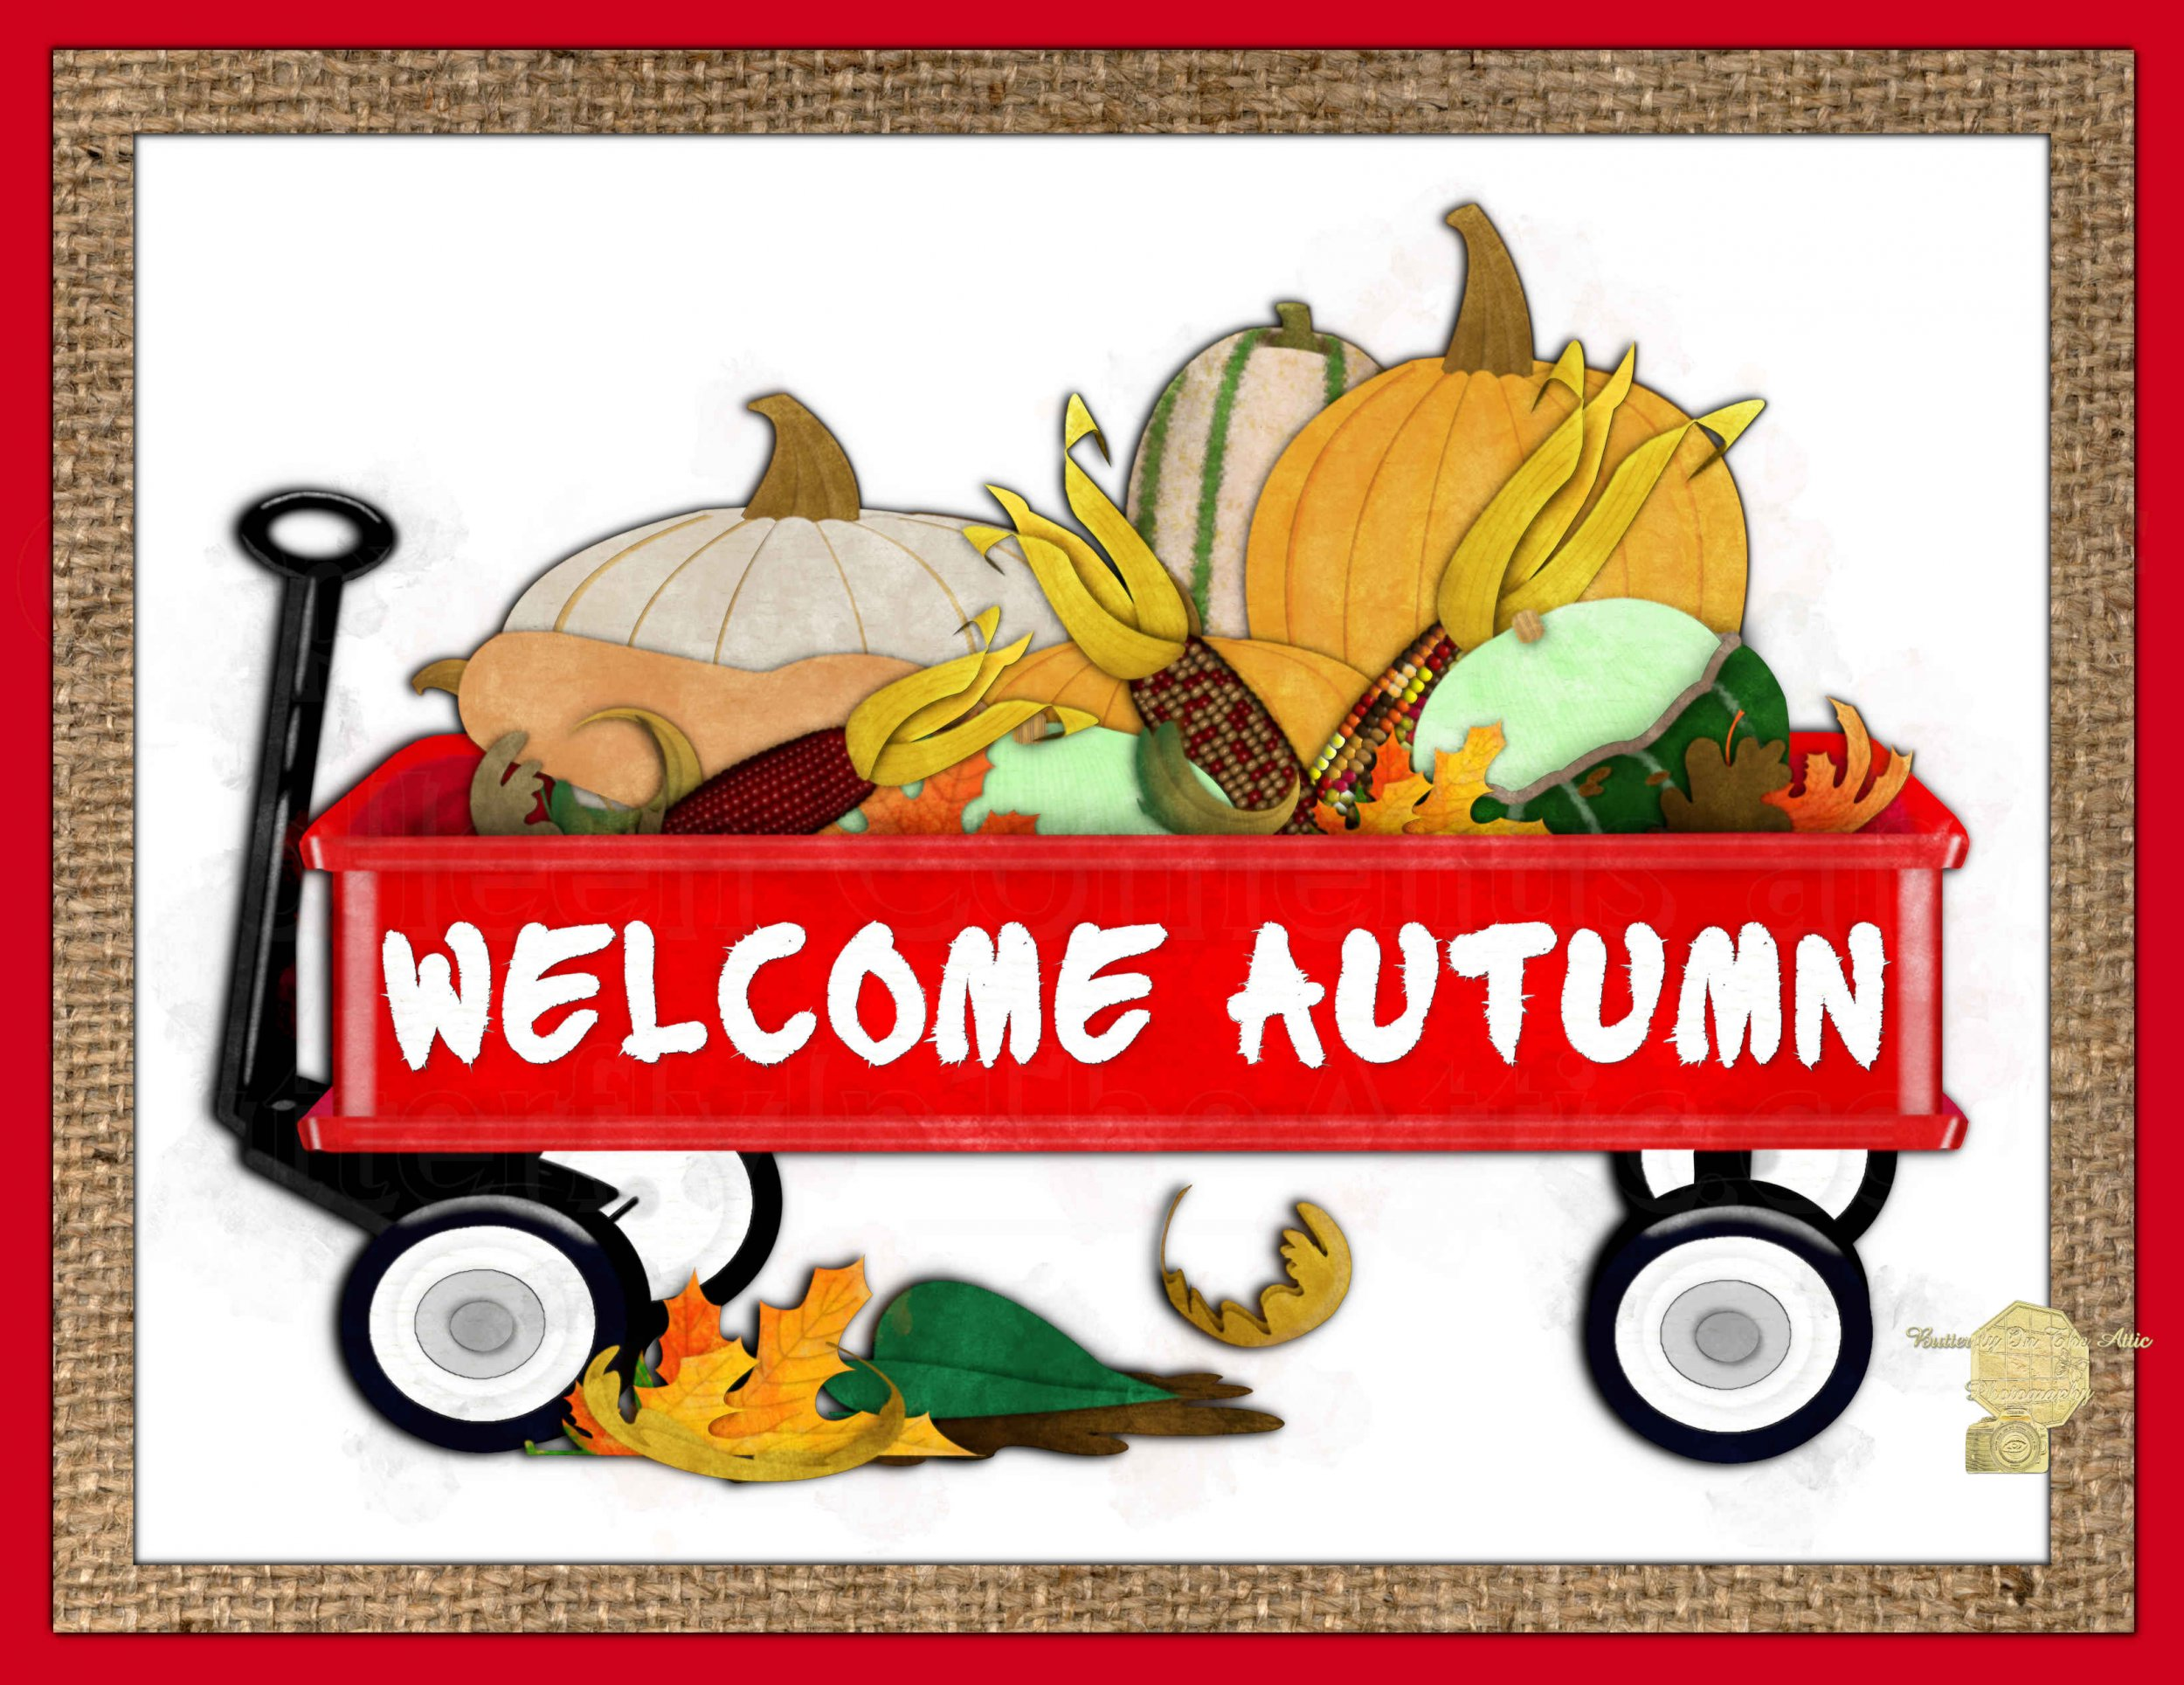 Set of 6 Fine Art Postcard Welcome Autumn Red Wagon Pumpkins Squash Indian Corn